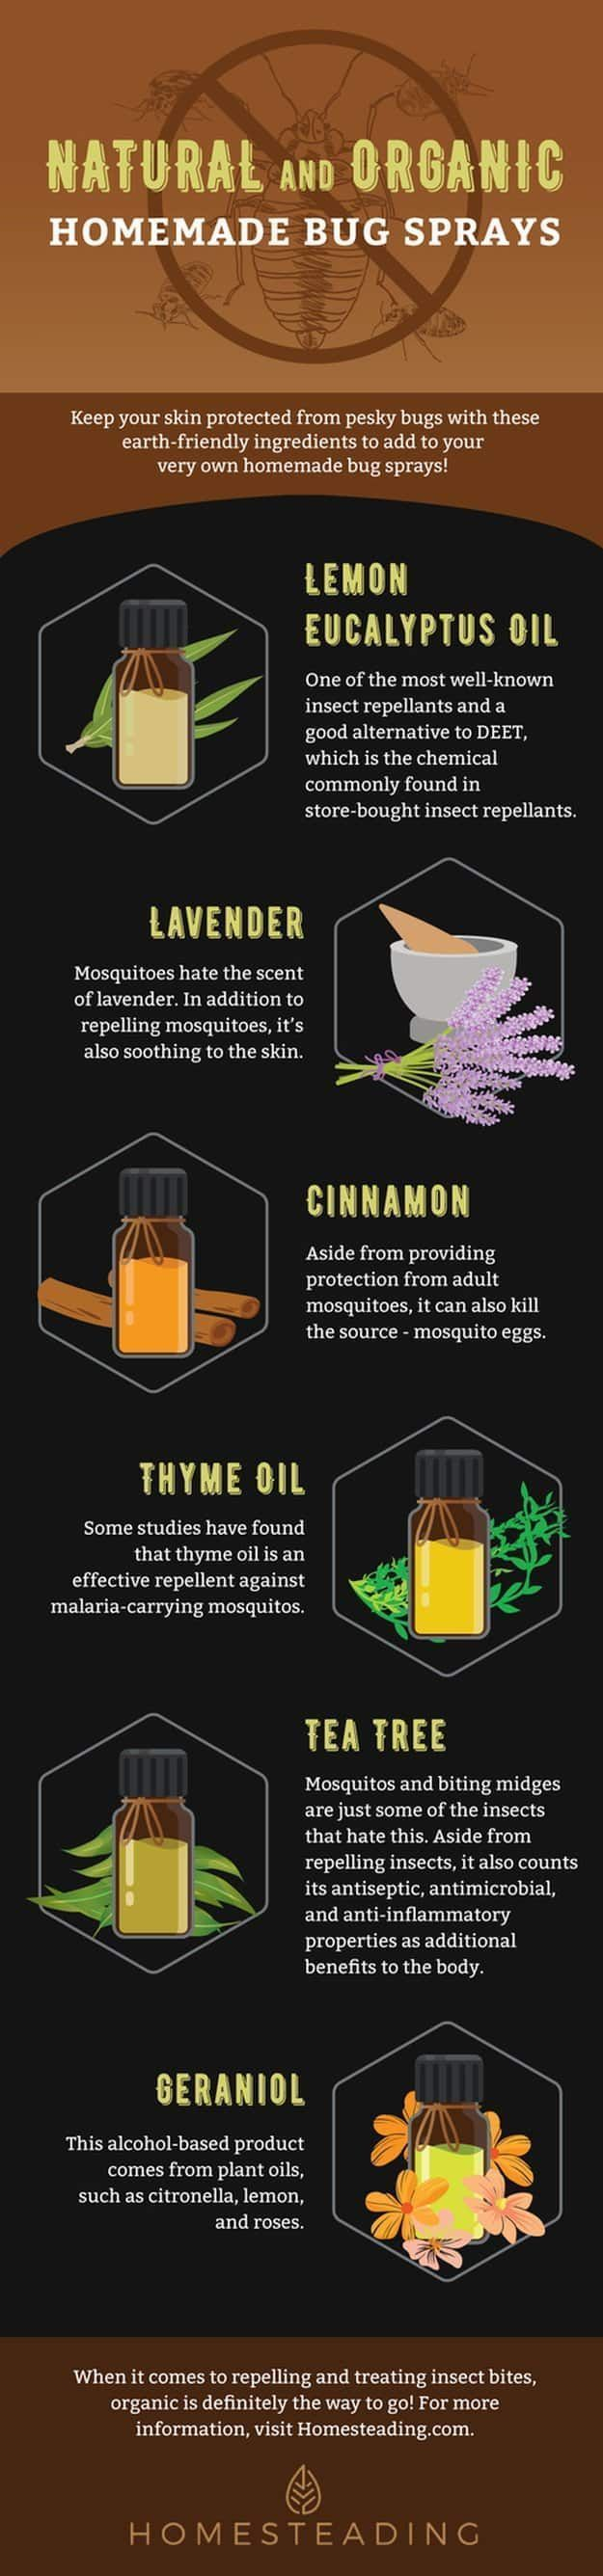 It's always best to go natural and organic when it comes to keeping your skin and safe. Here's a list of some natural ingredients that work like magic to repel mosquitoes | Natural and Organic Homemade Bug Sprays | https://homesteading.com/homemade-bug-sprays/